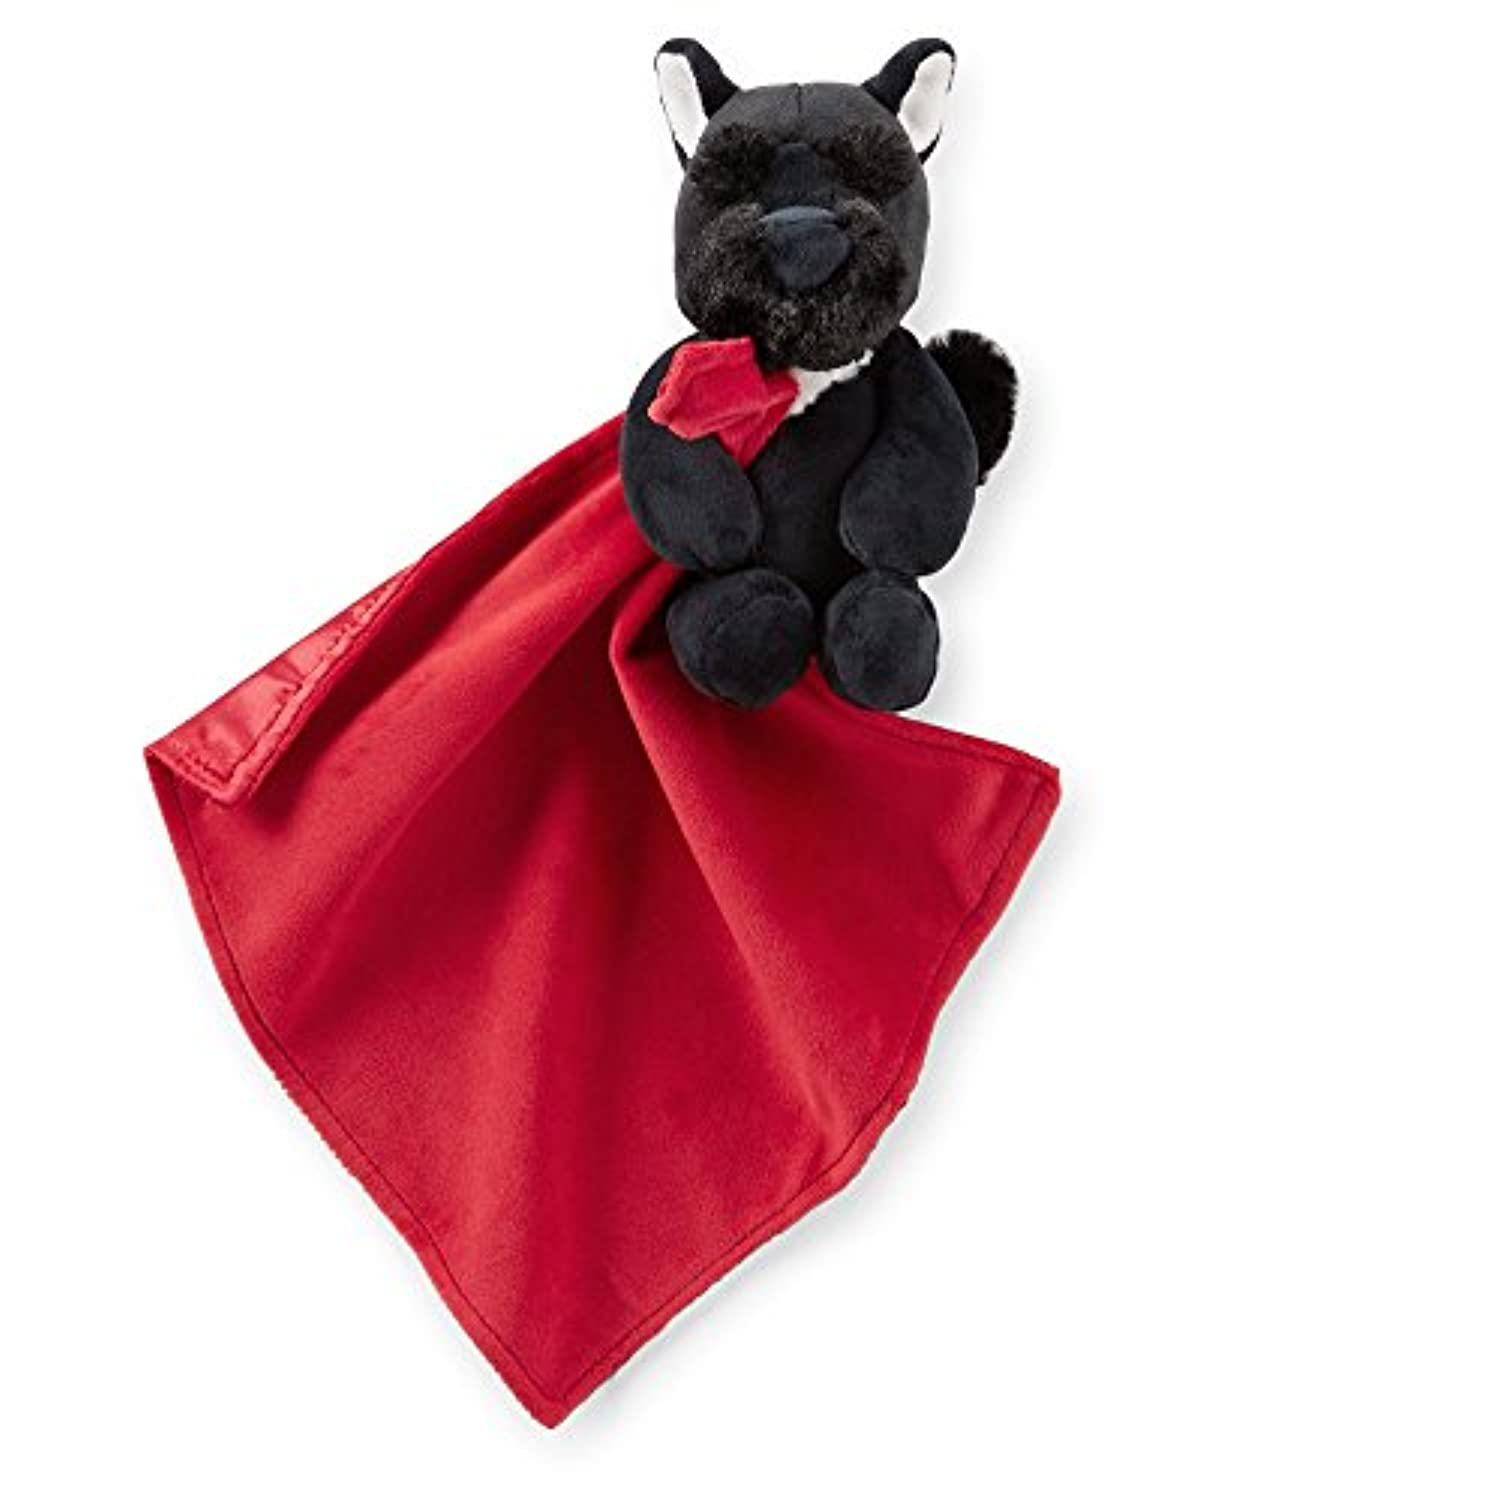 Carter's Red and Black Scottie Scotty Dog Snuggle Buddy Security Blanket by Carter's